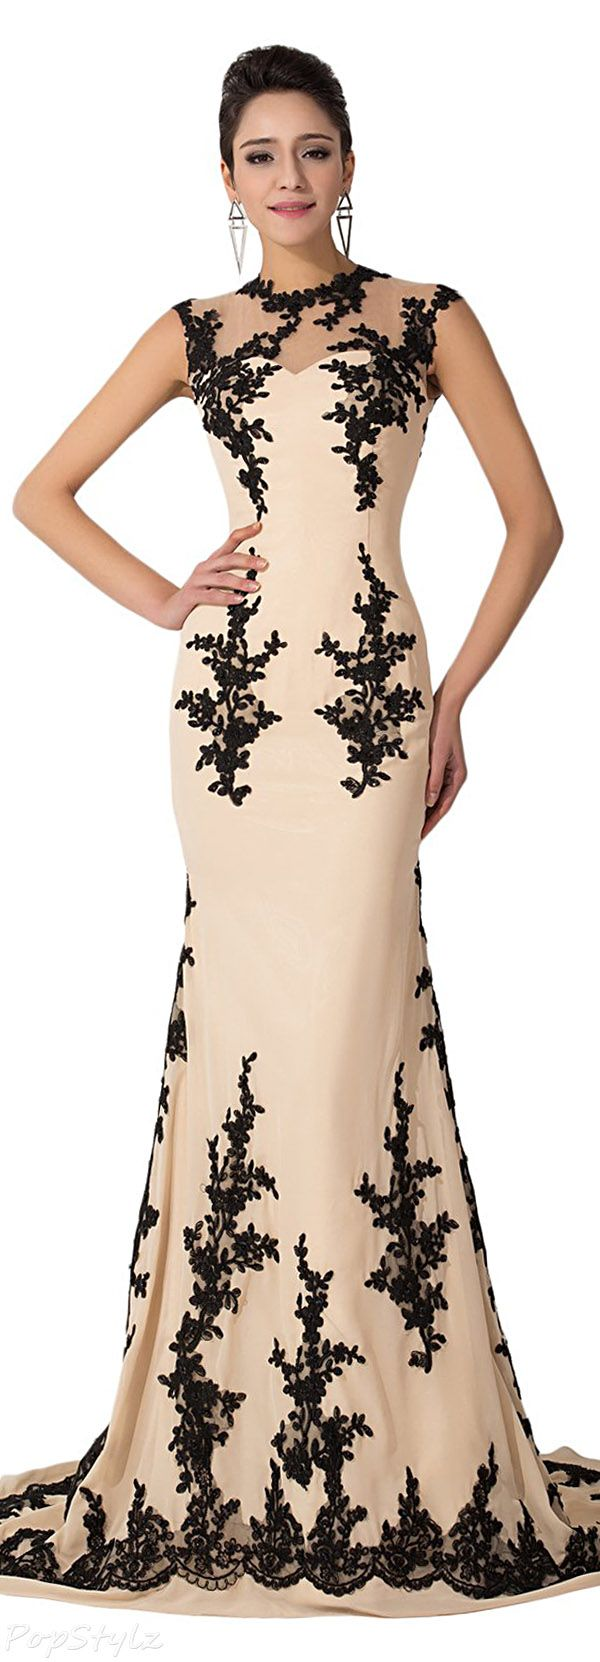 Sunvary Champagne & Black Lace Applique Mermaid Gown